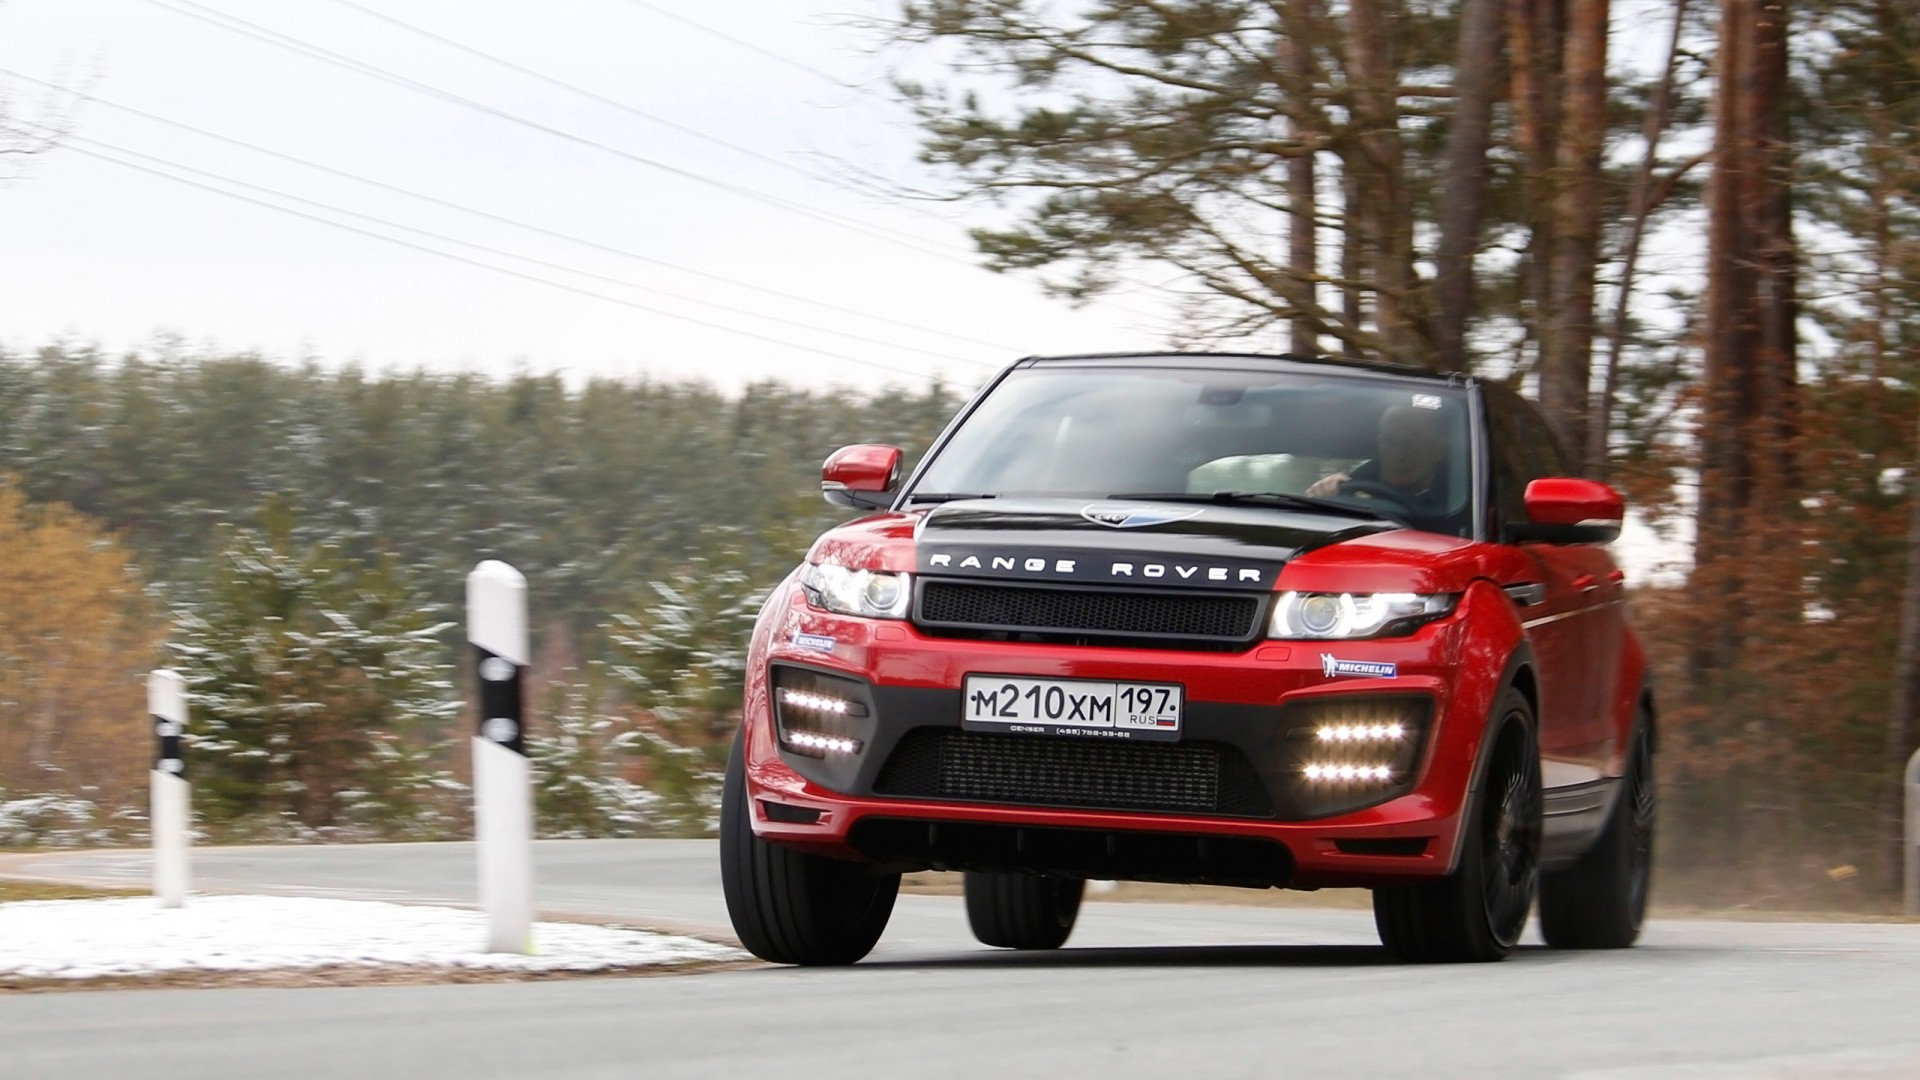 Range Rover Evoque >> 2014 Range Rover Evoque By Larte Design Wallpaper | HD Car ...